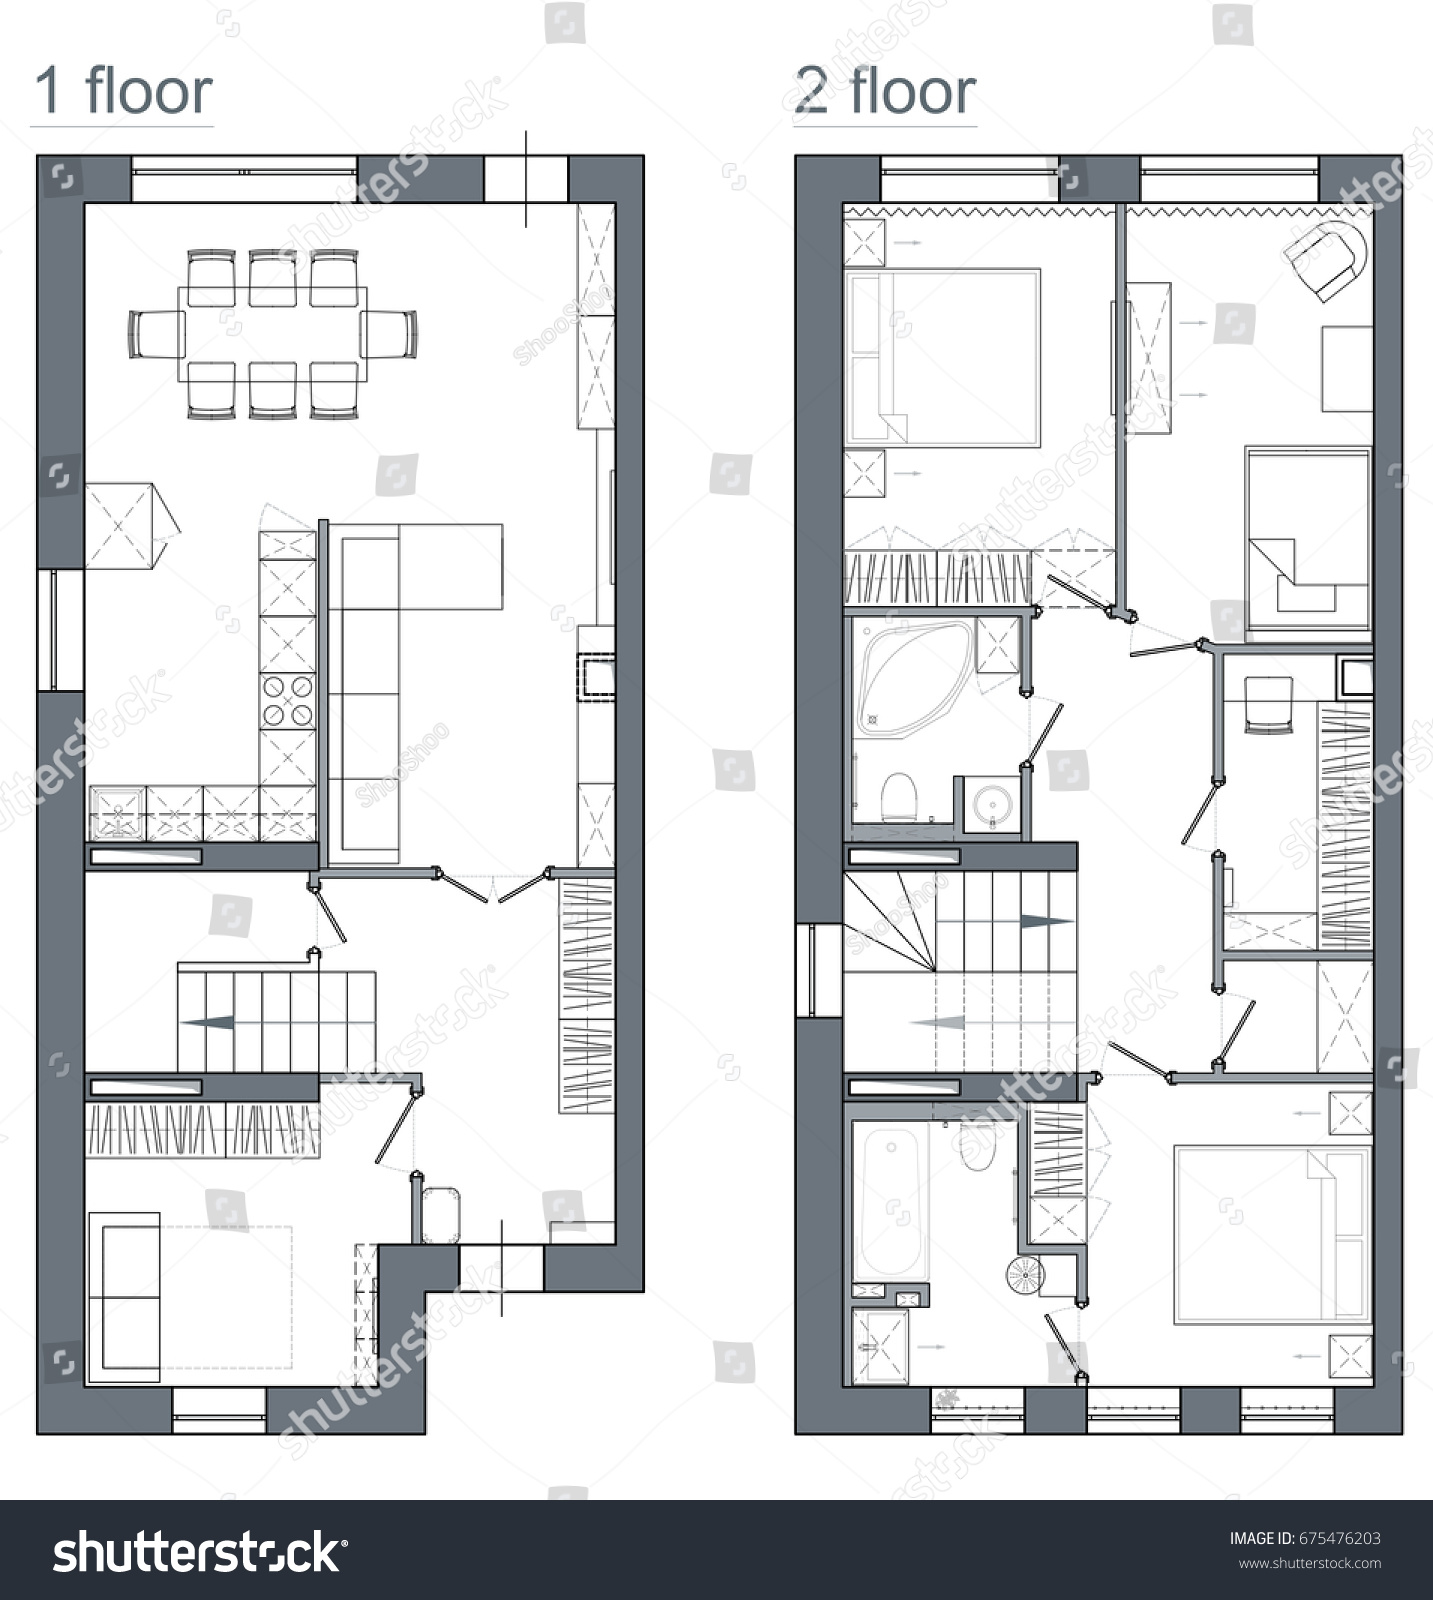 Drawing Plan Two Story Apartment Stock Illustration